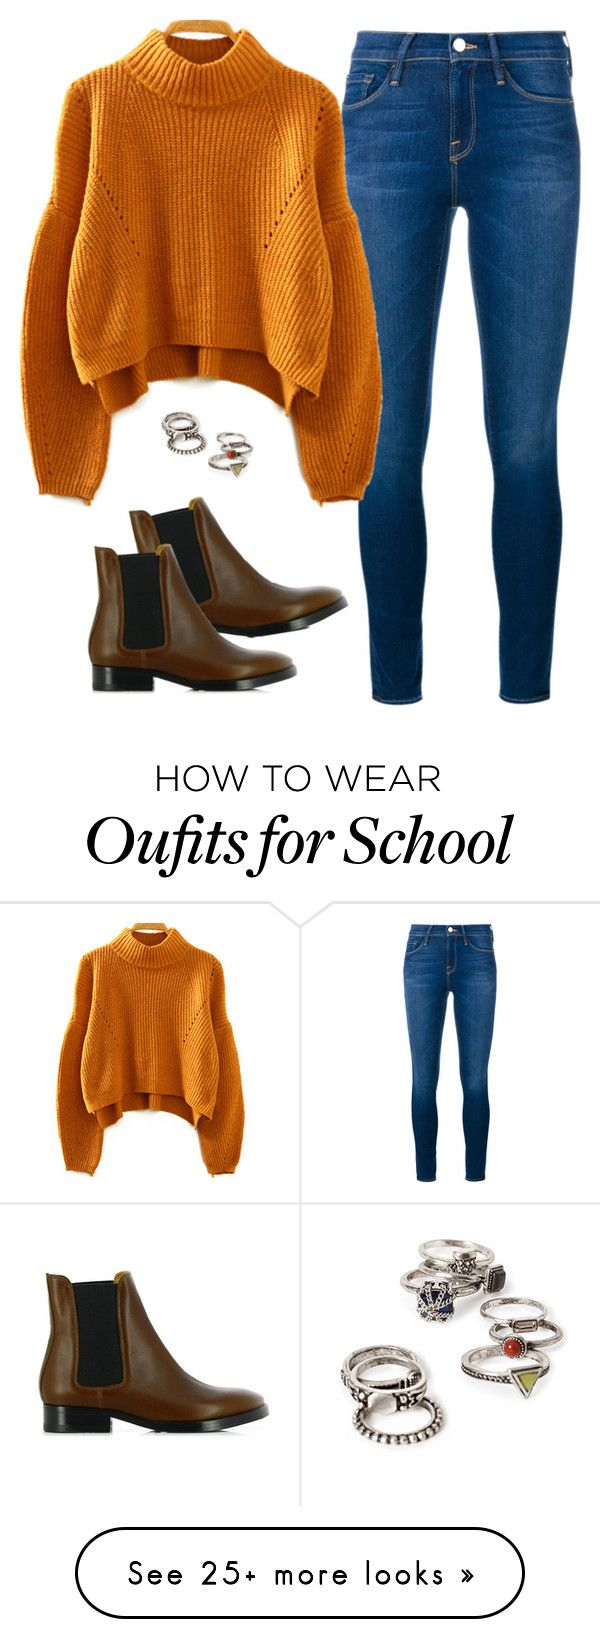 """""""OOTD (Inspired): Simple School Outfit"""" by racheld28 on Polyvore featuring Frame Denim, Acne Studios, Forever 21, women's clothing, women's fashion, women, female, woman, misses and juniors"""